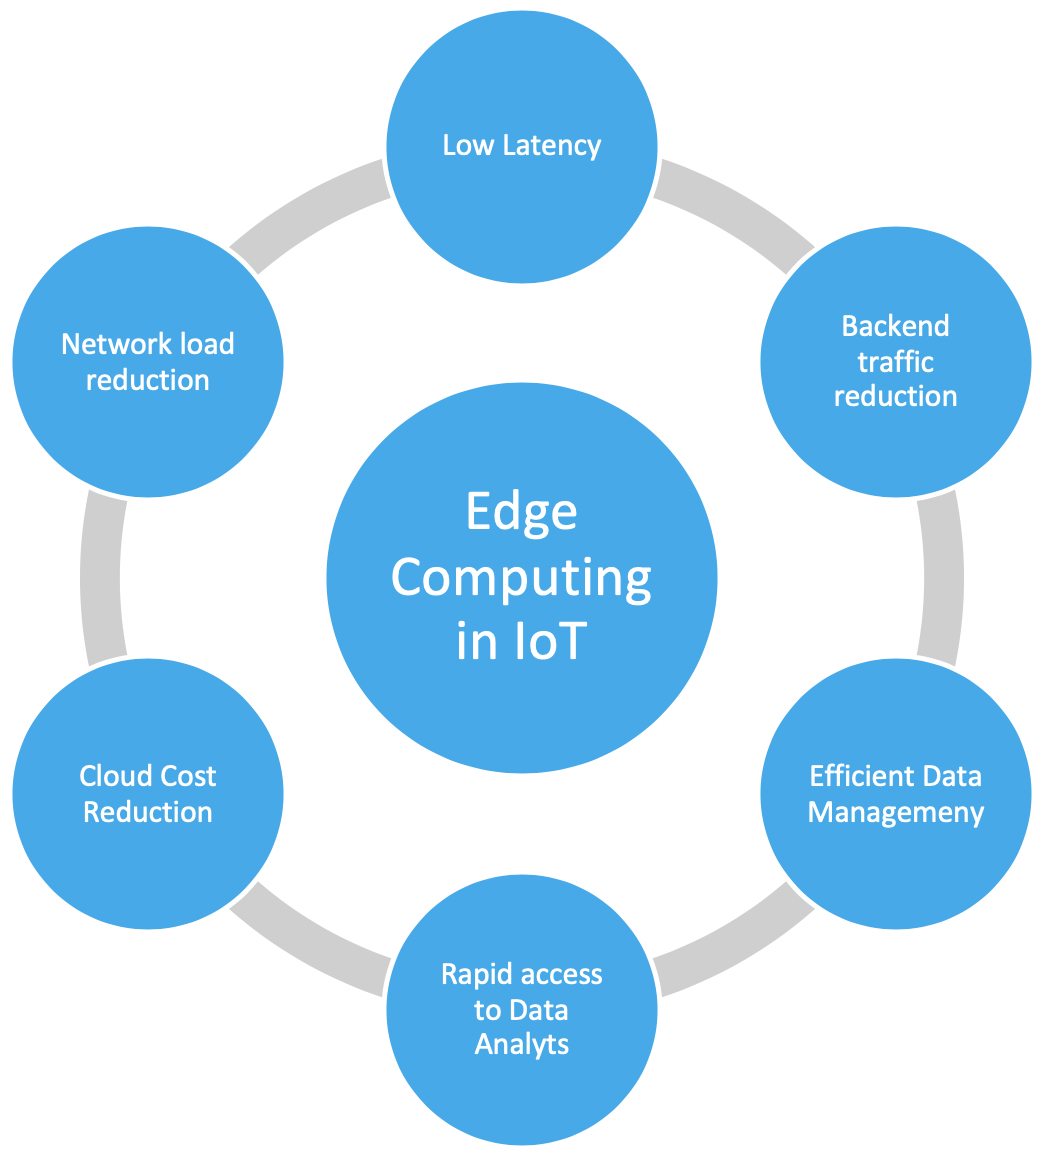 What Is Edge Computing And Why Does It Matter For The Internet Of Things